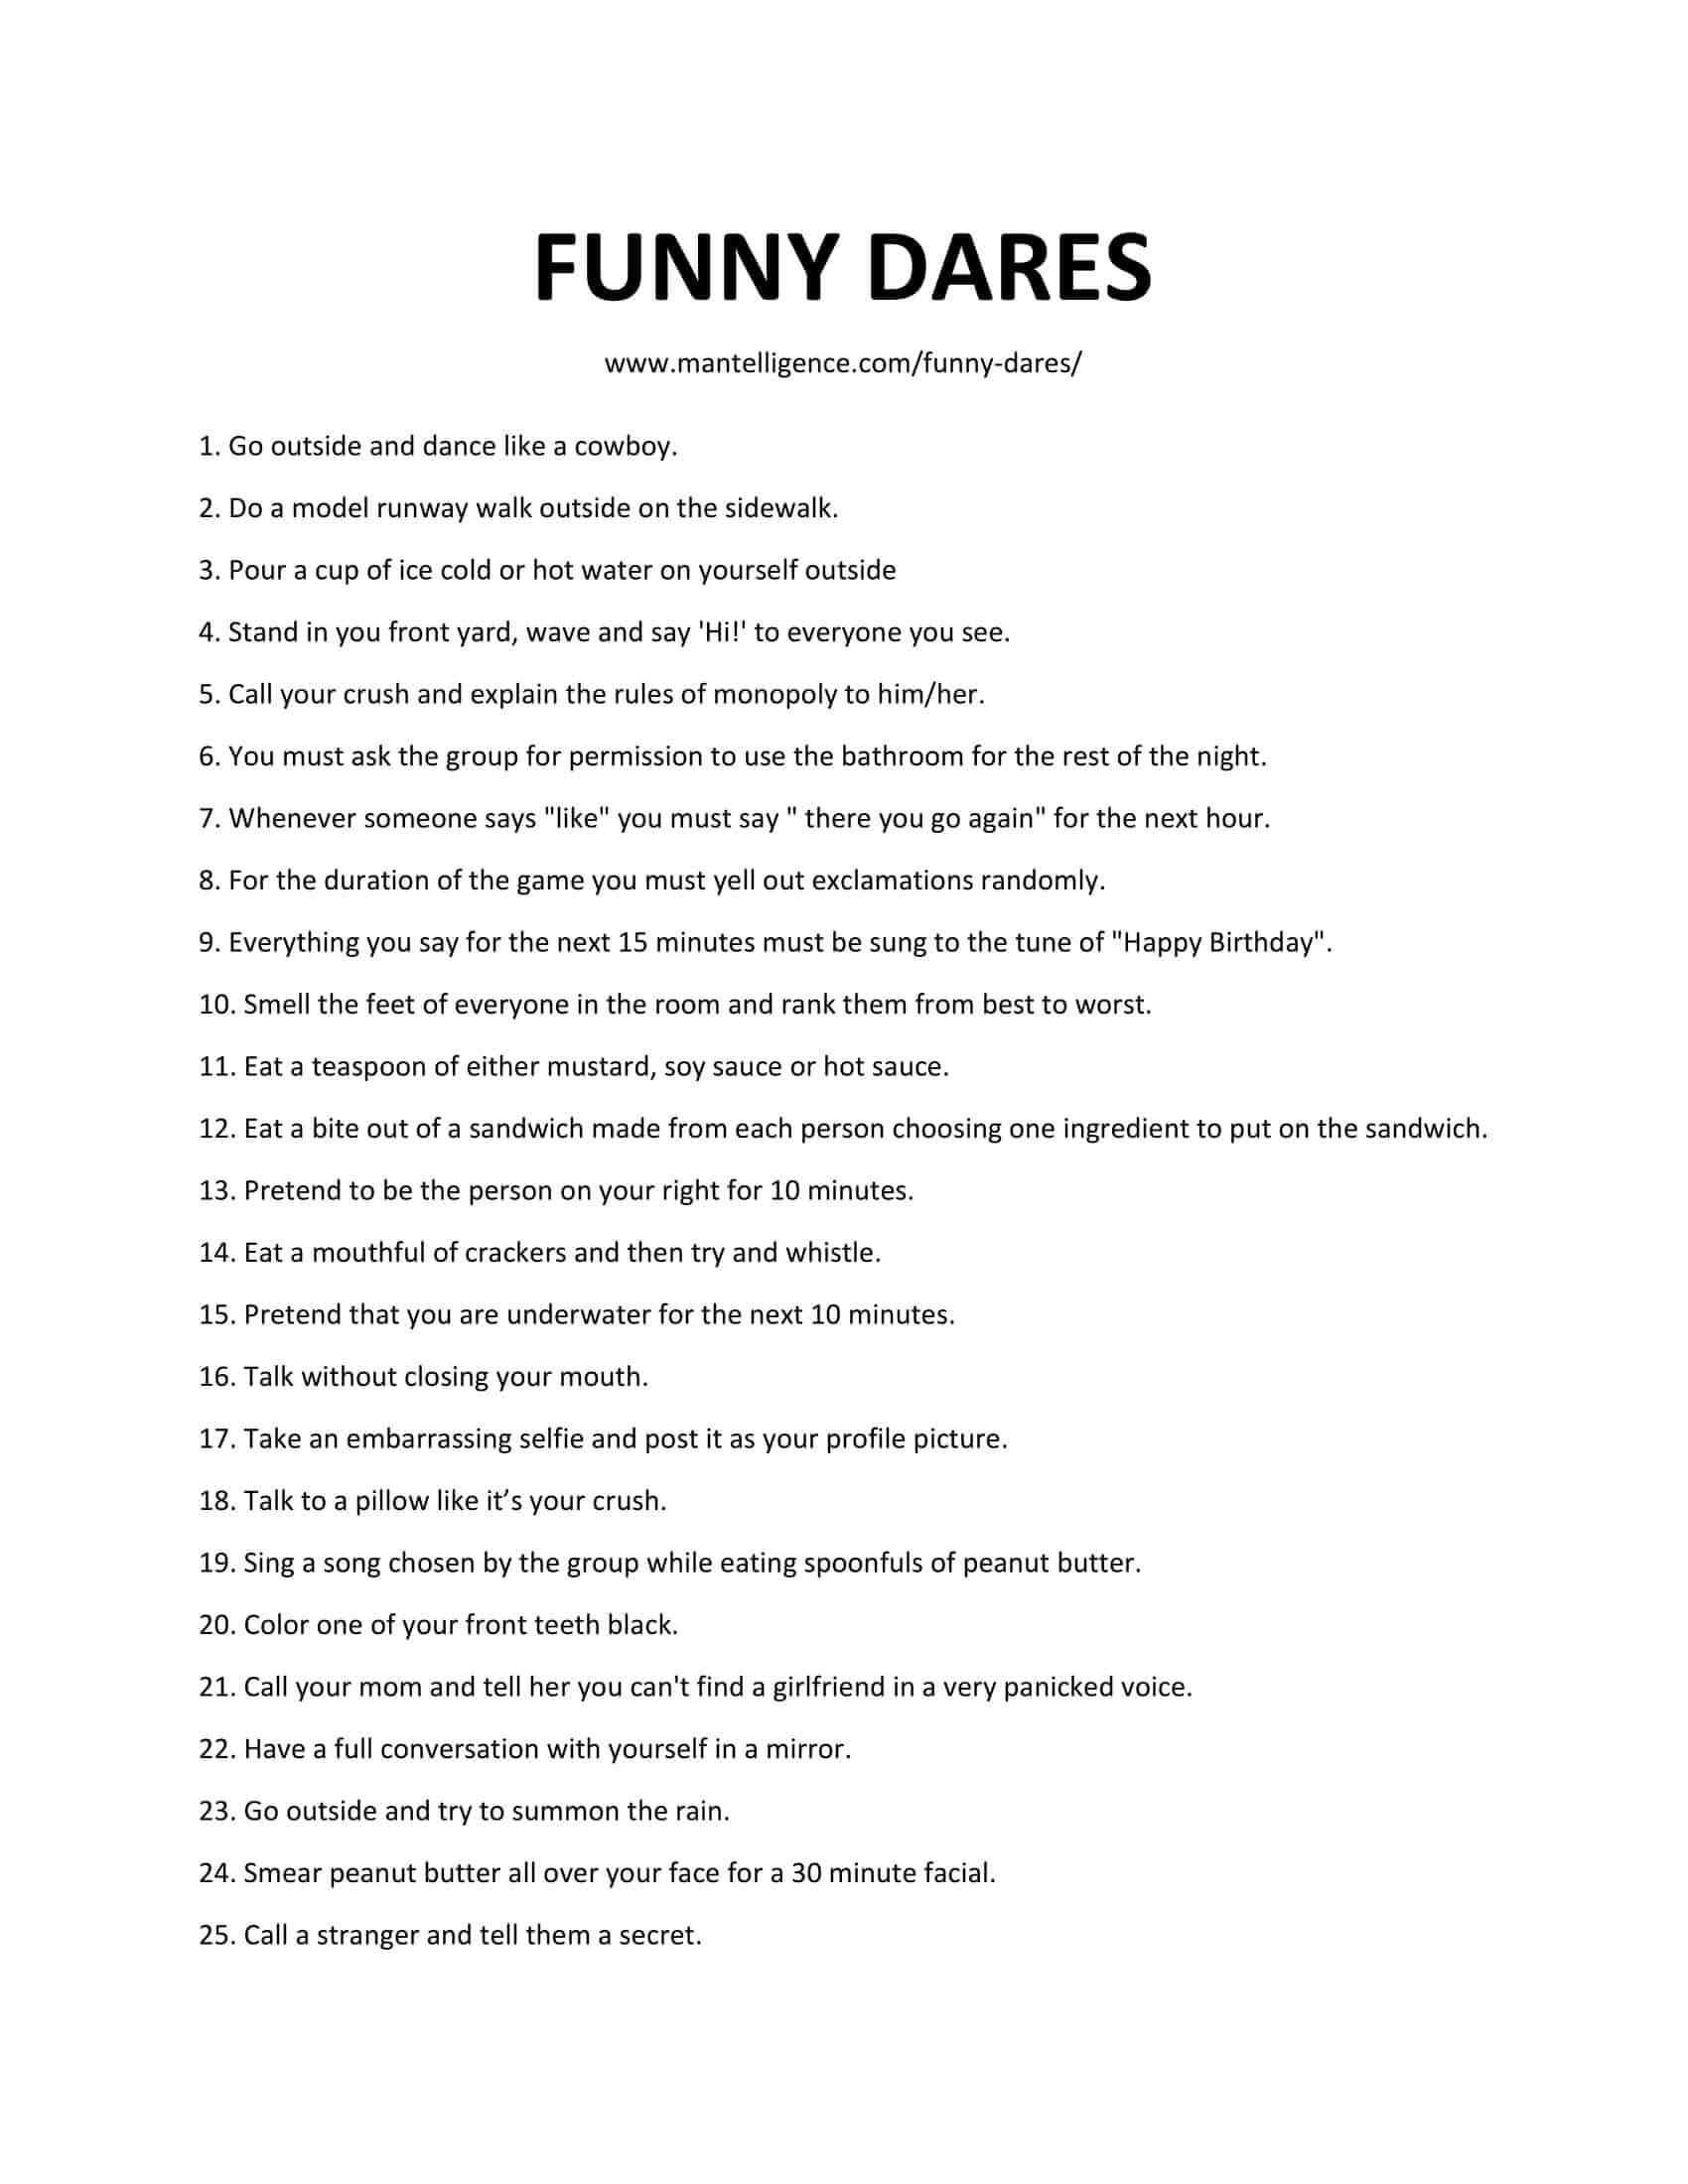 75 Incredibly Funny Dares – The only list you'll n